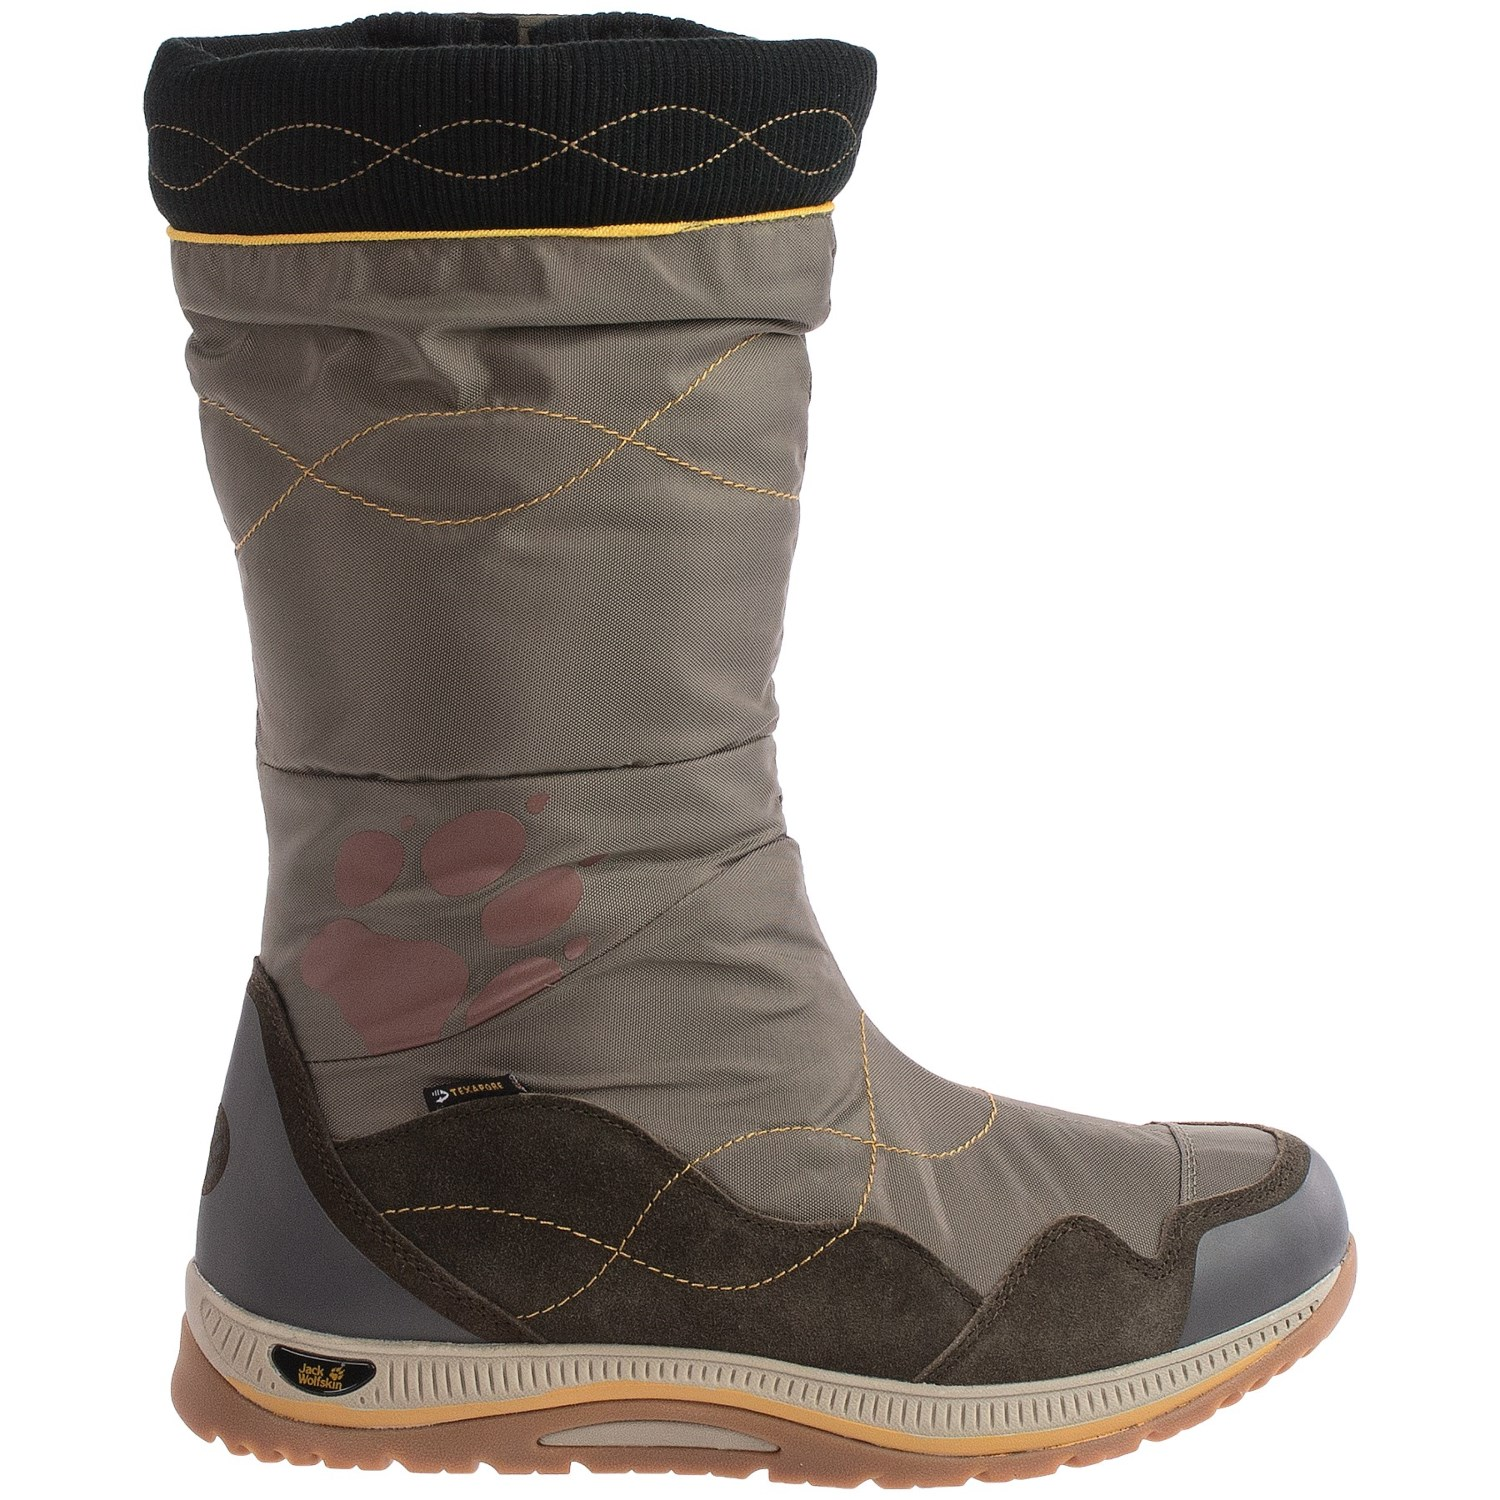 jack wolfskin fairbanks texapore snow boots for women save 73. Black Bedroom Furniture Sets. Home Design Ideas